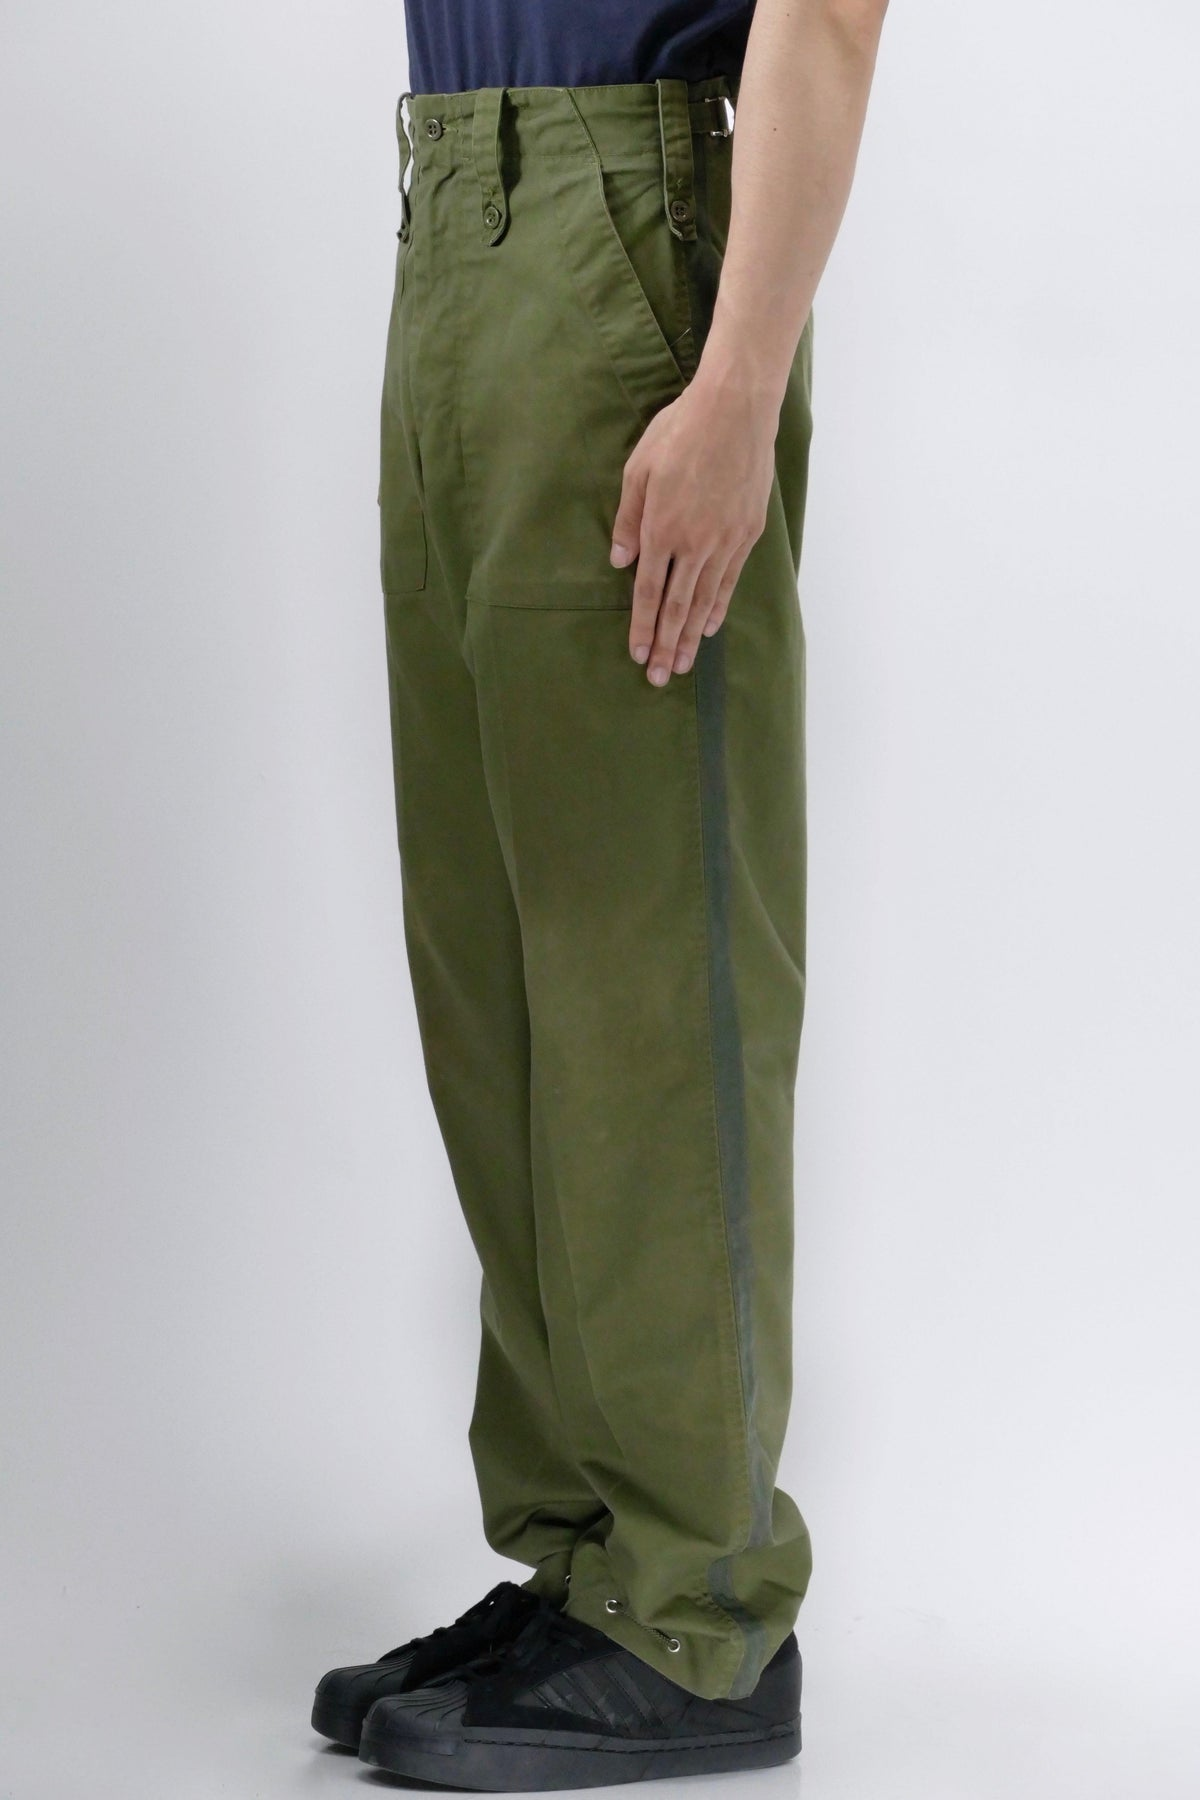 Myar British Fatigue Military Pants Green